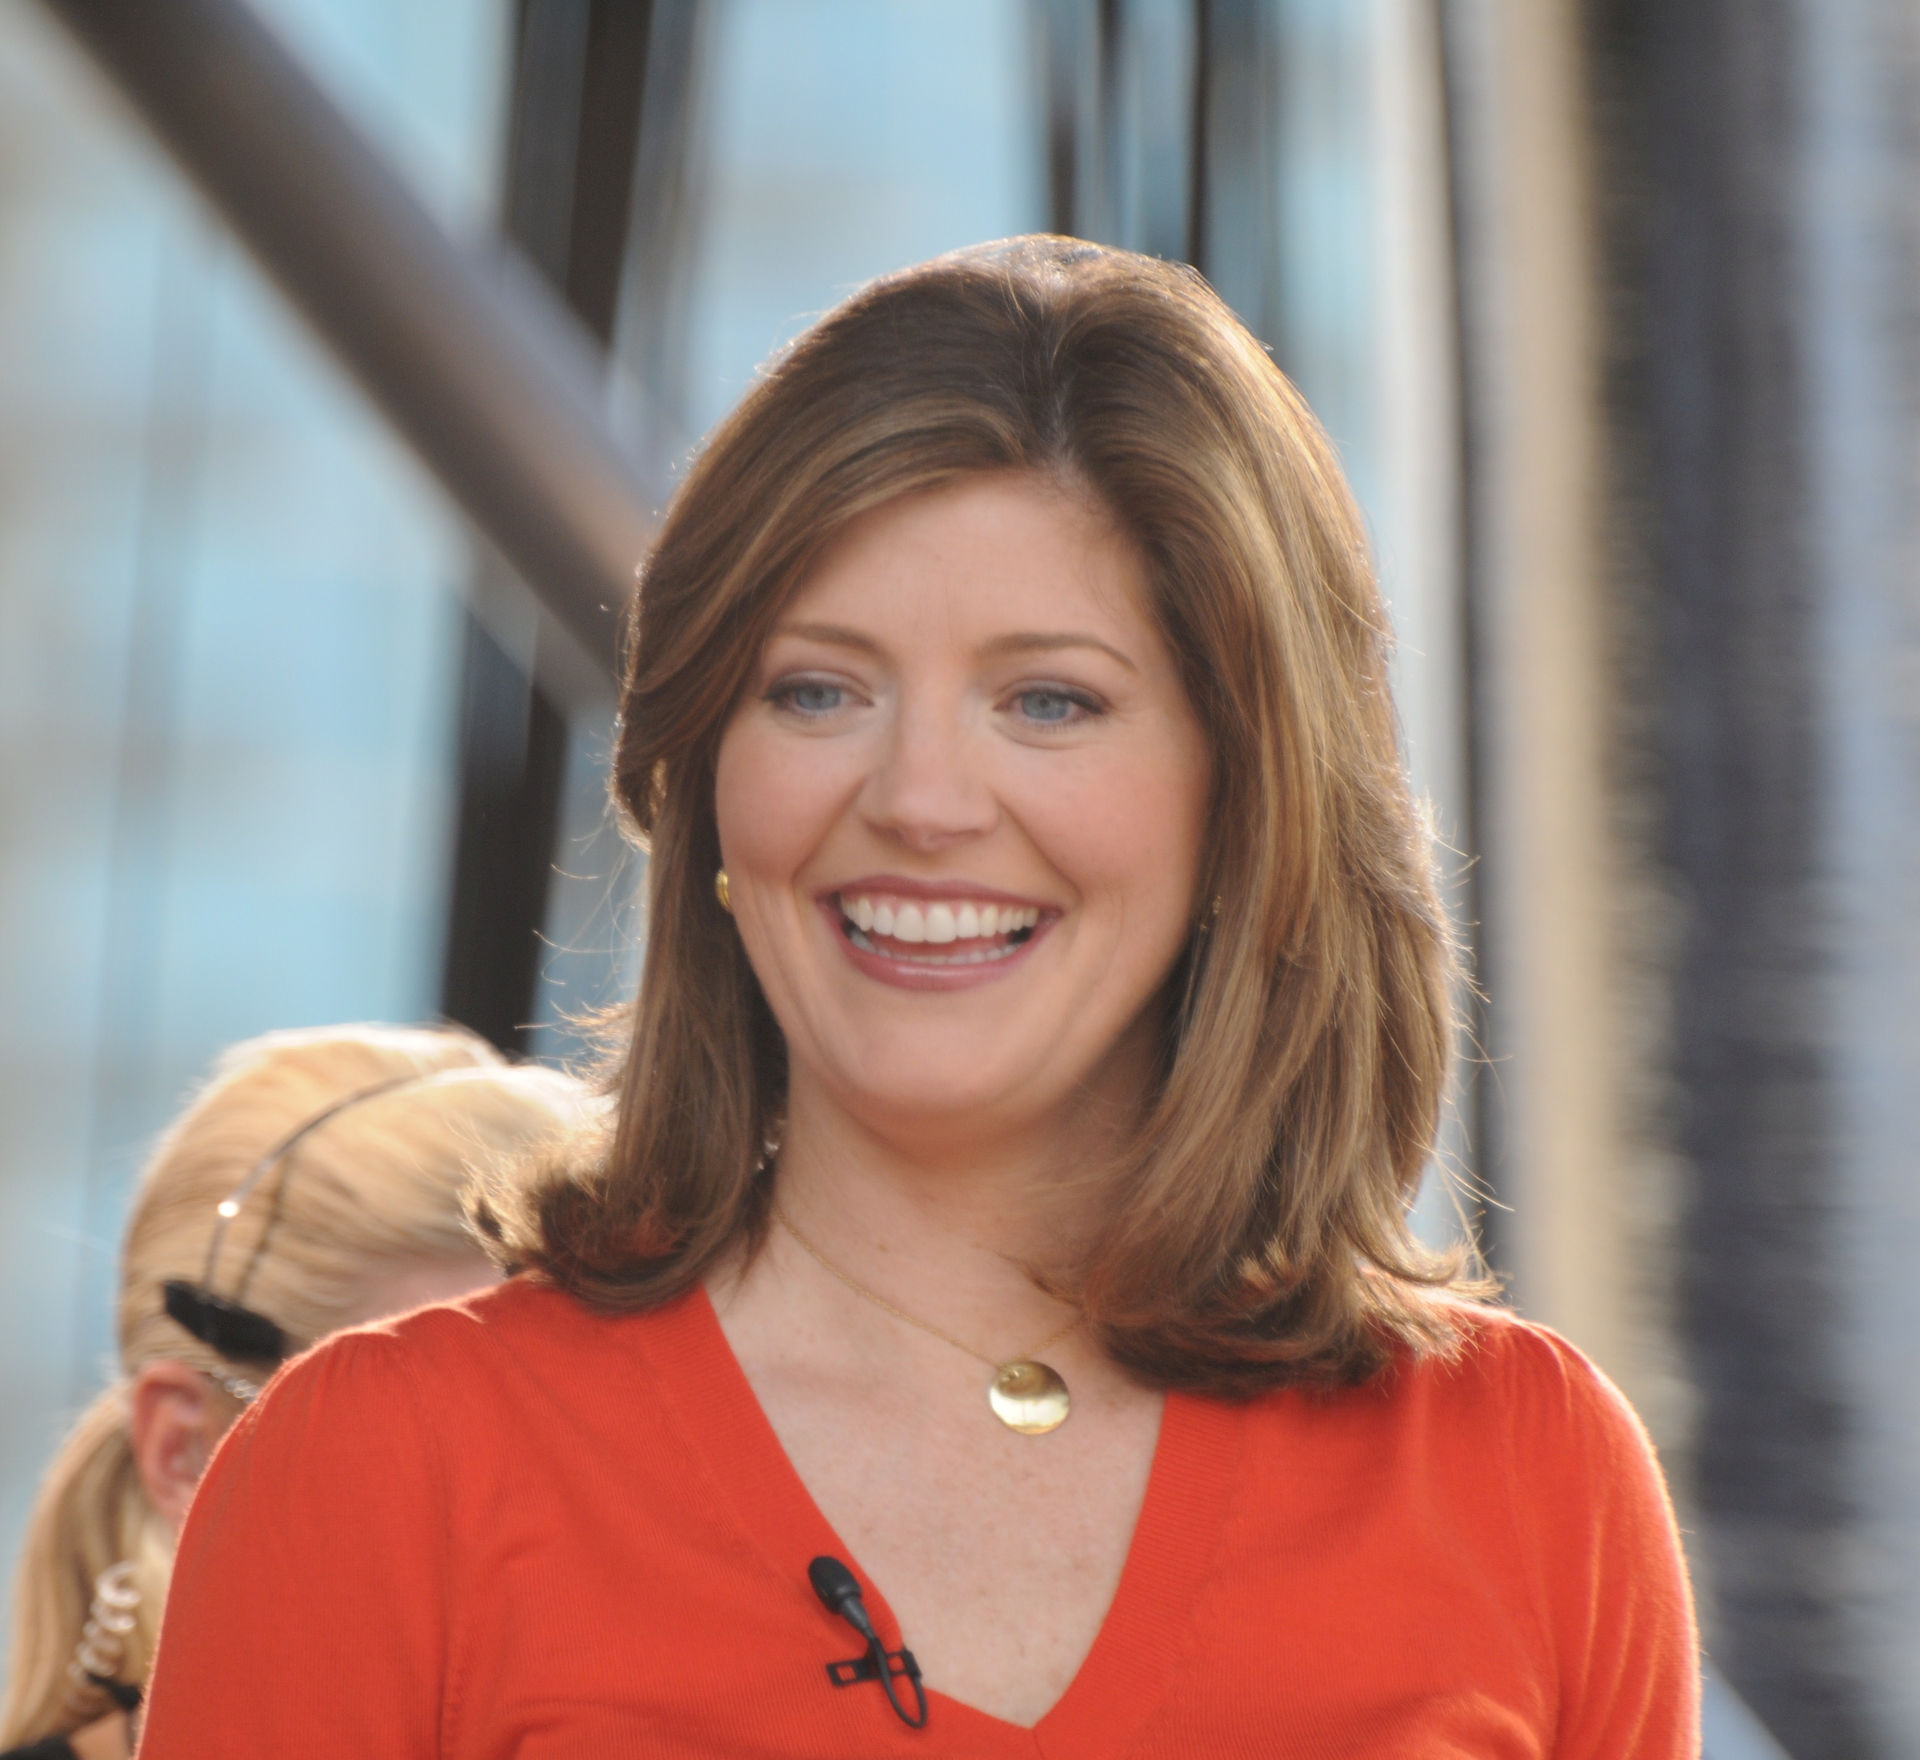 Photo of Norah O'Donnell: TV News Co-Anchor